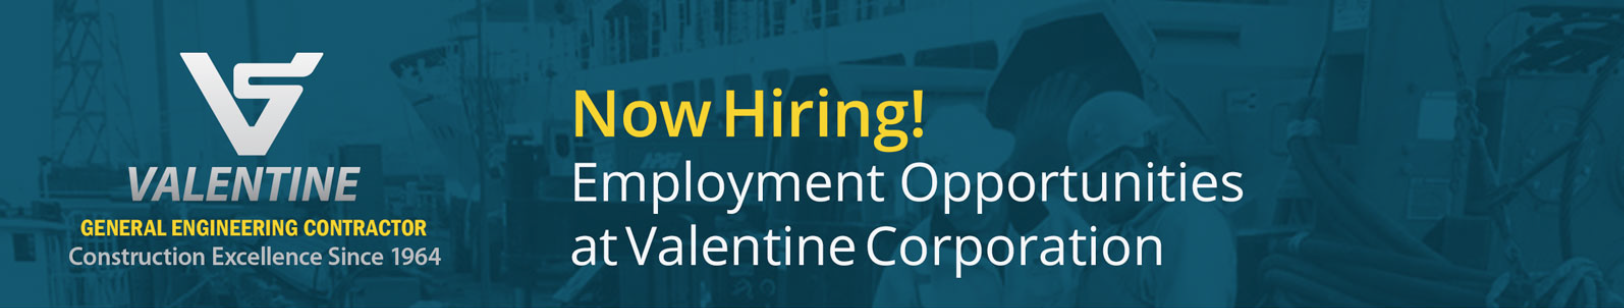 Career Opportunities with Valentine Corporation.png